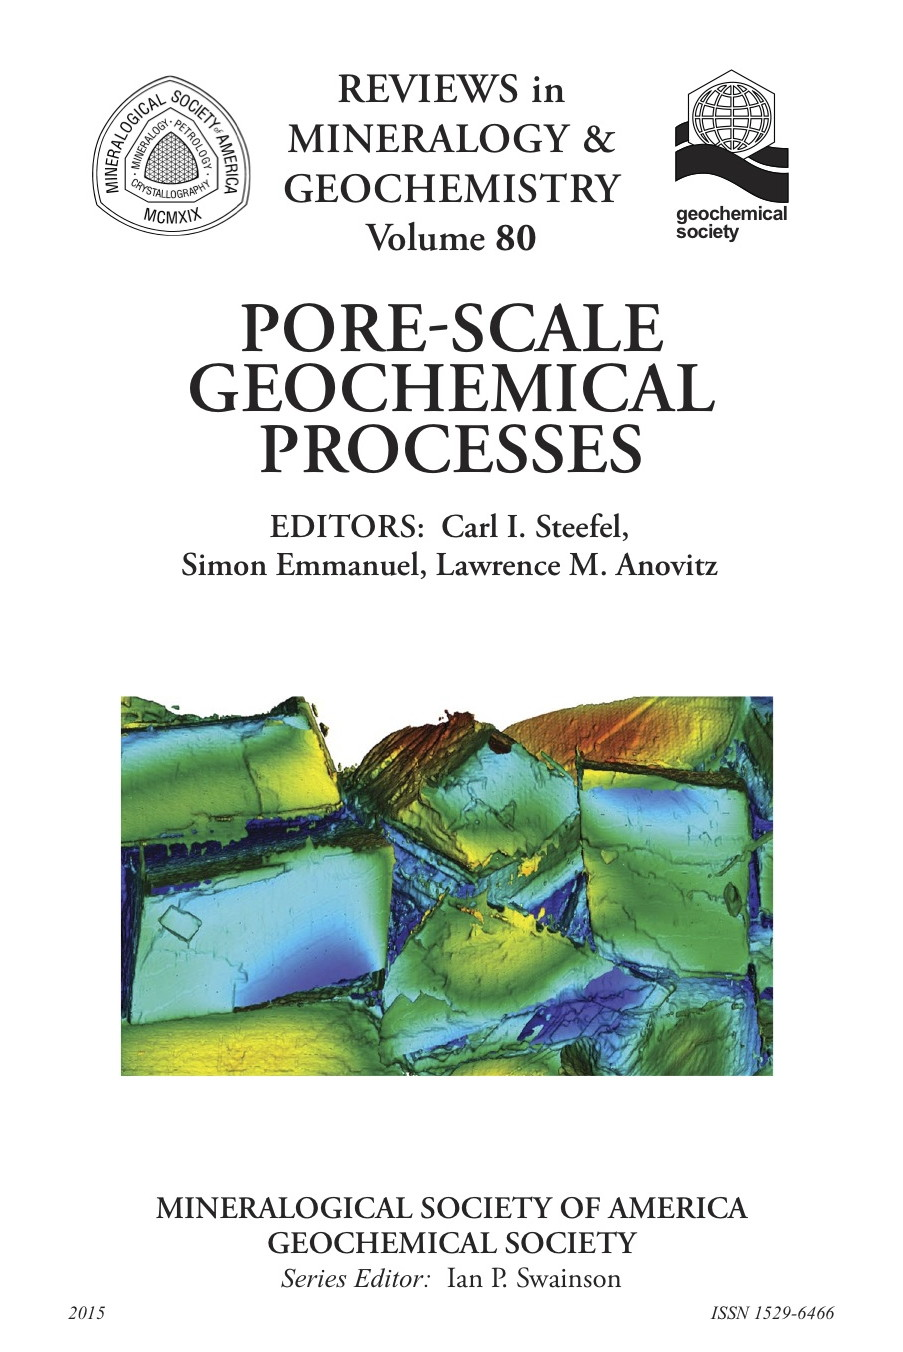 Cover of Pore-Scale Geochemical Processes